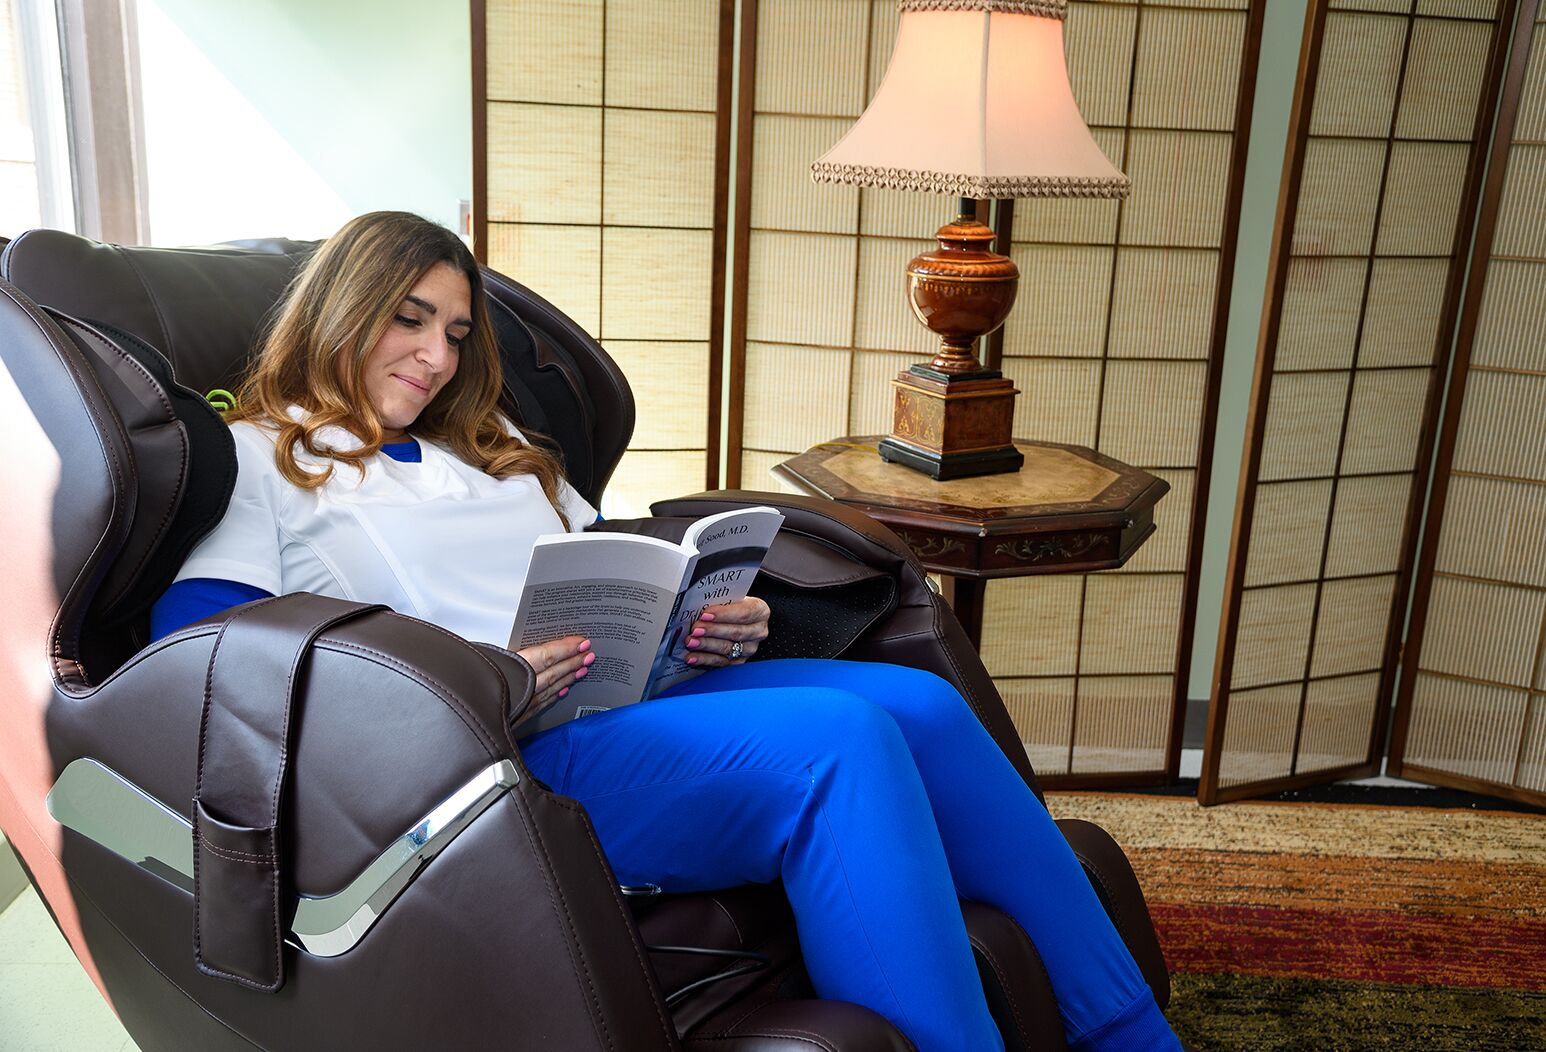 Glen Cove Hospital nurse, Andrea Marchese, RN, relaxes in an electric massage chair.